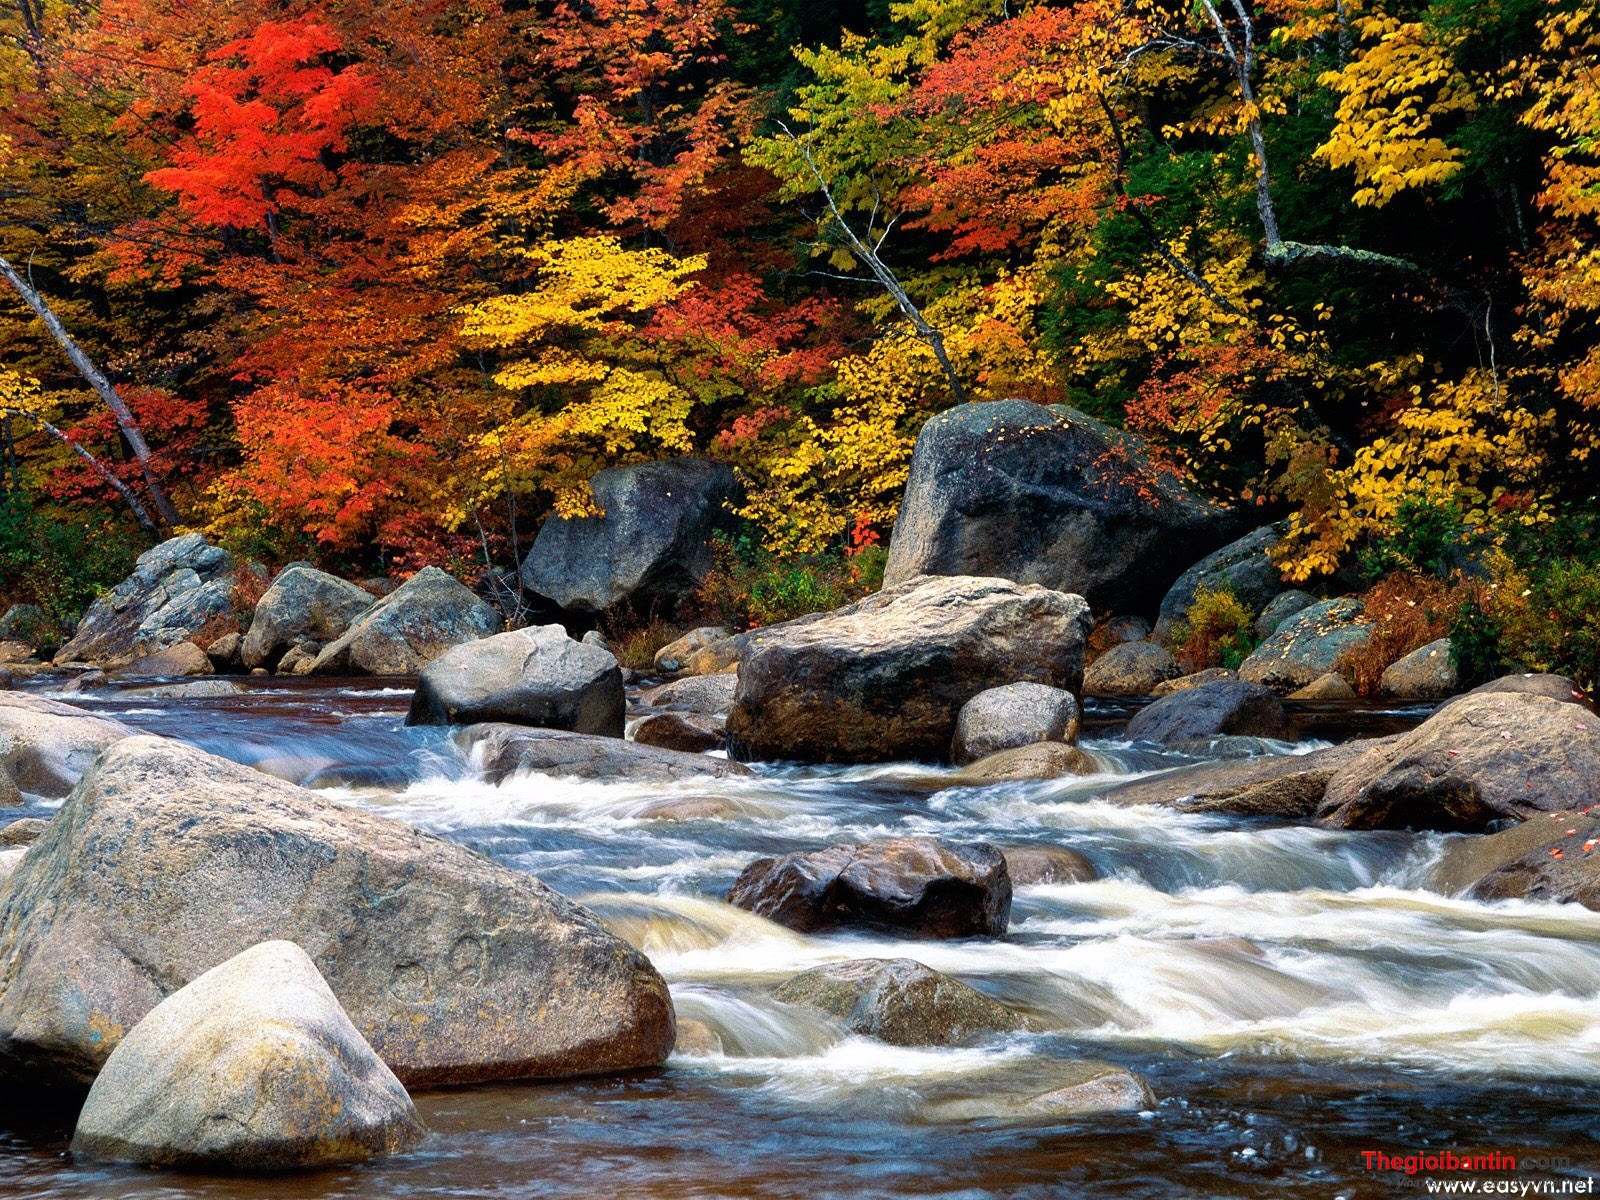 www-easyvn-net-25-rivers-and-creeks-wallpapers-020